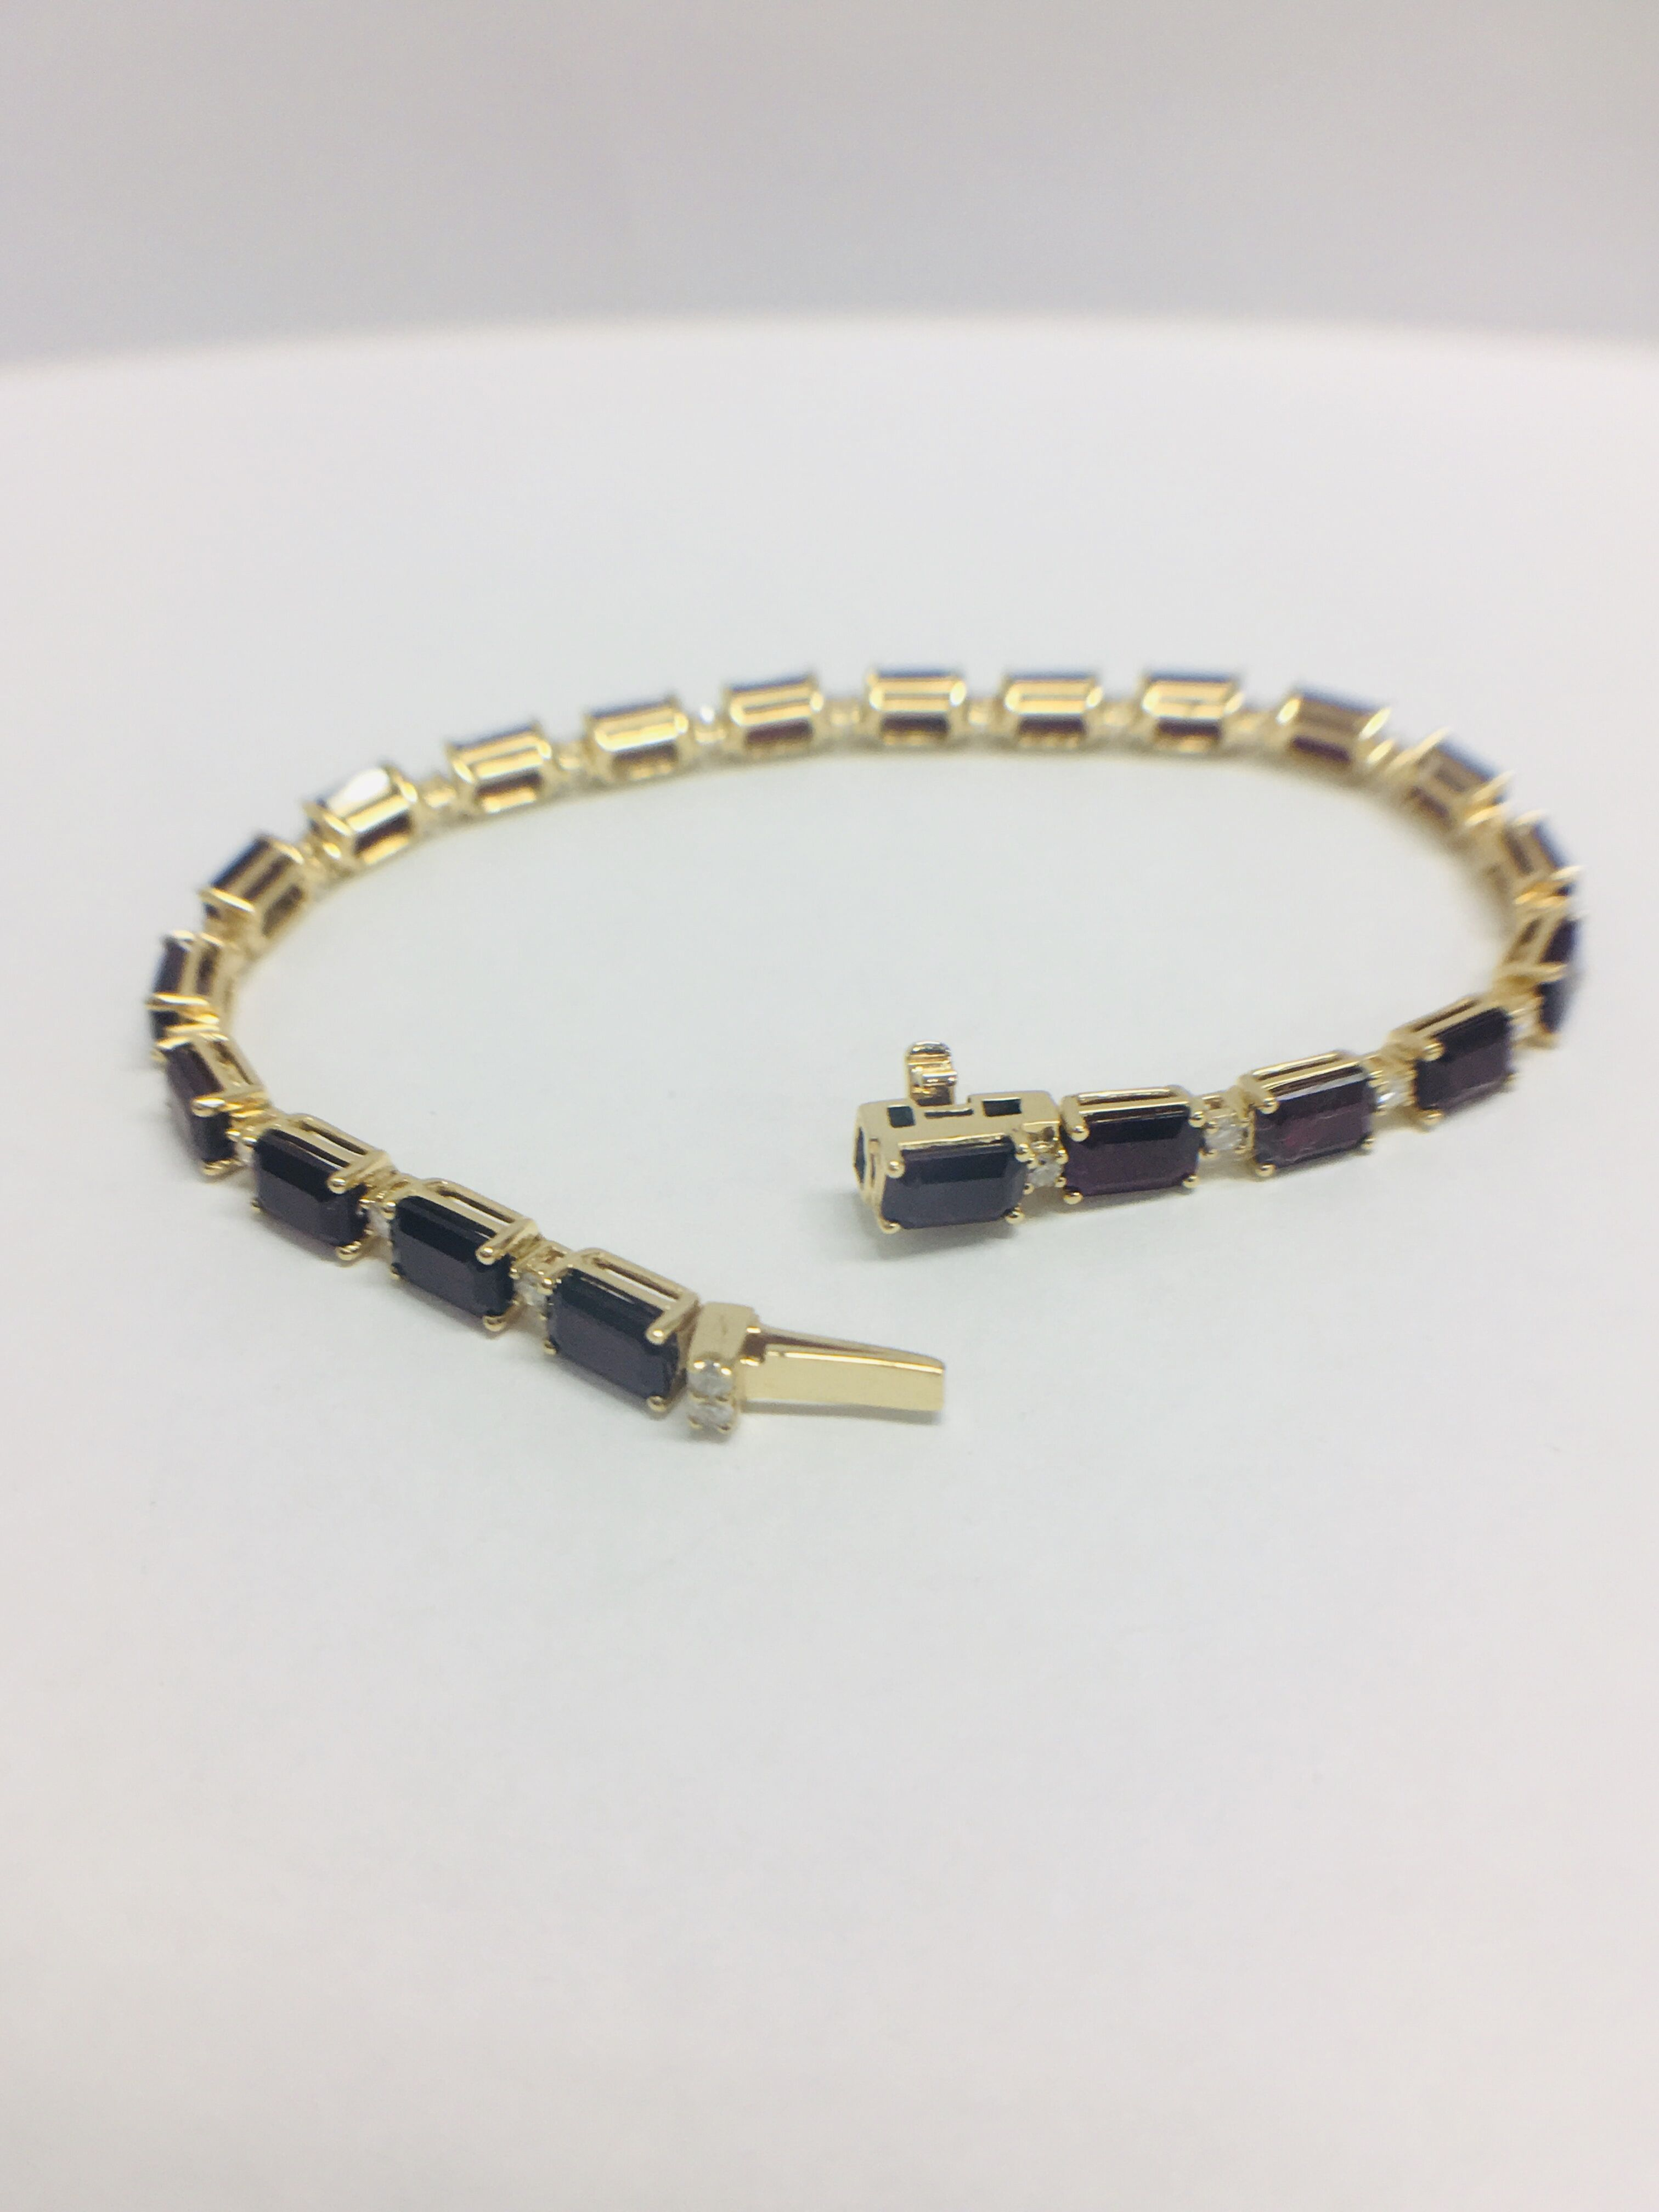 18ct yellow gold ruby and diamond tennis bracelet - Image 5 of 10